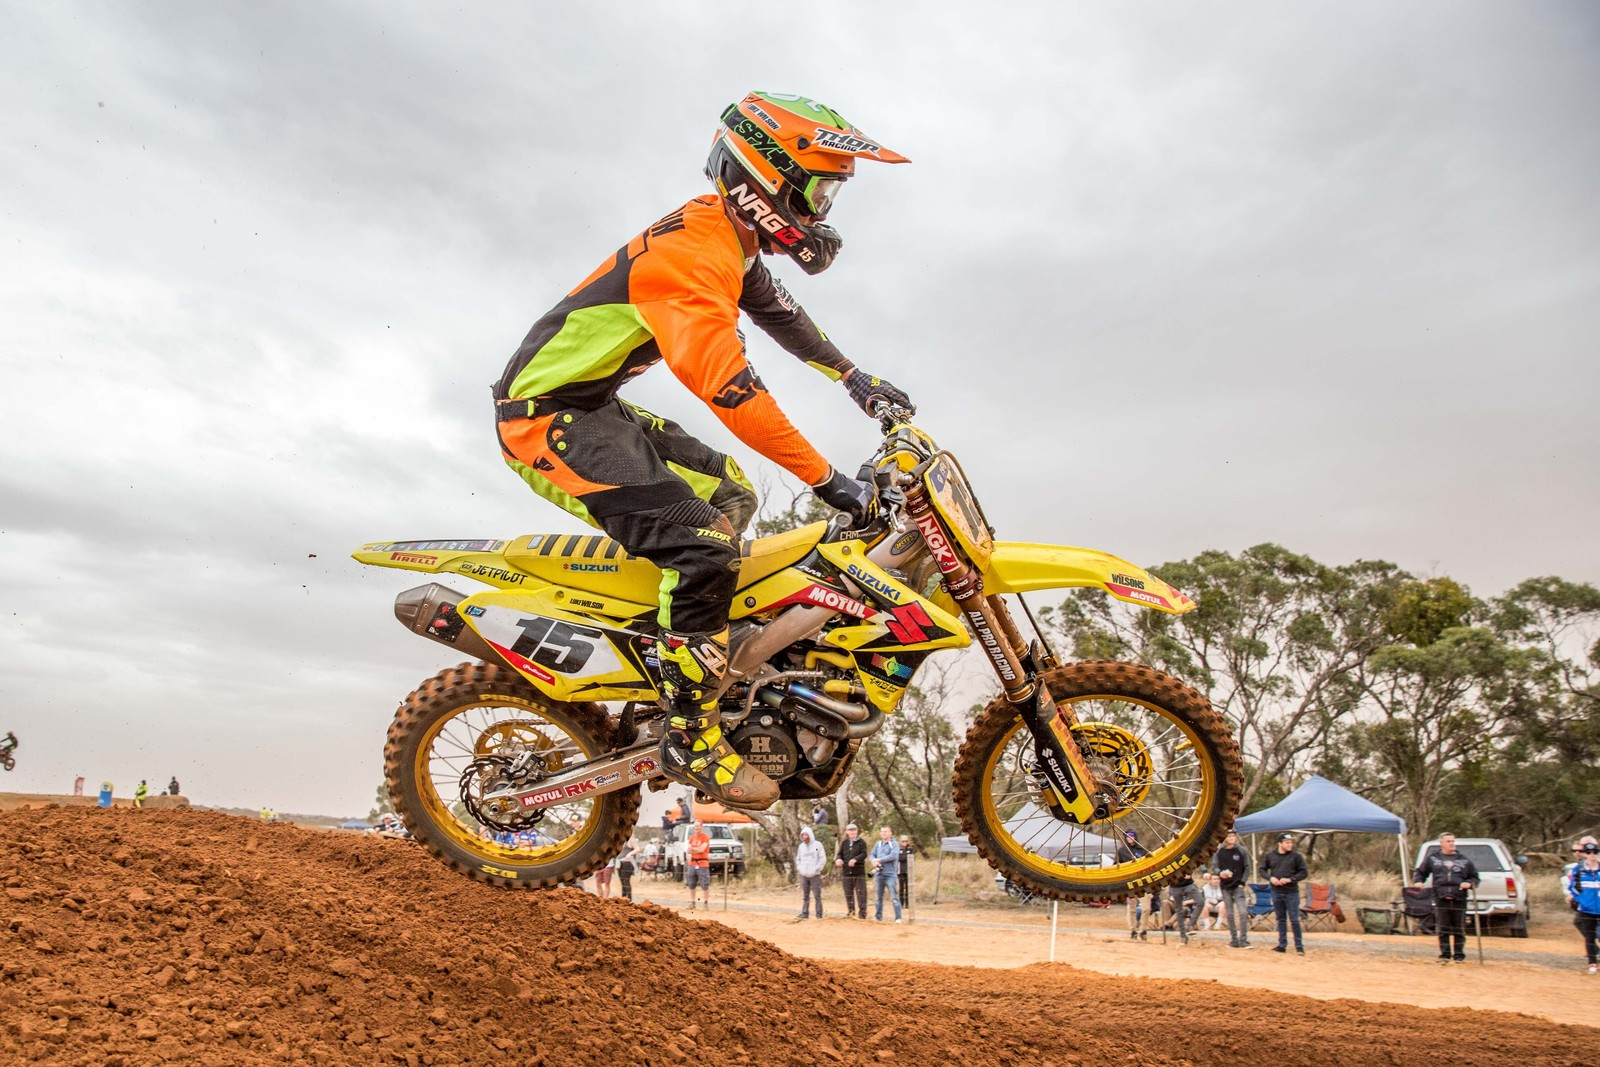 Luke Wilson - Australian Motul Mx Championships: Round 4, Murray Bridge - Motocross Pictures - Vital MX